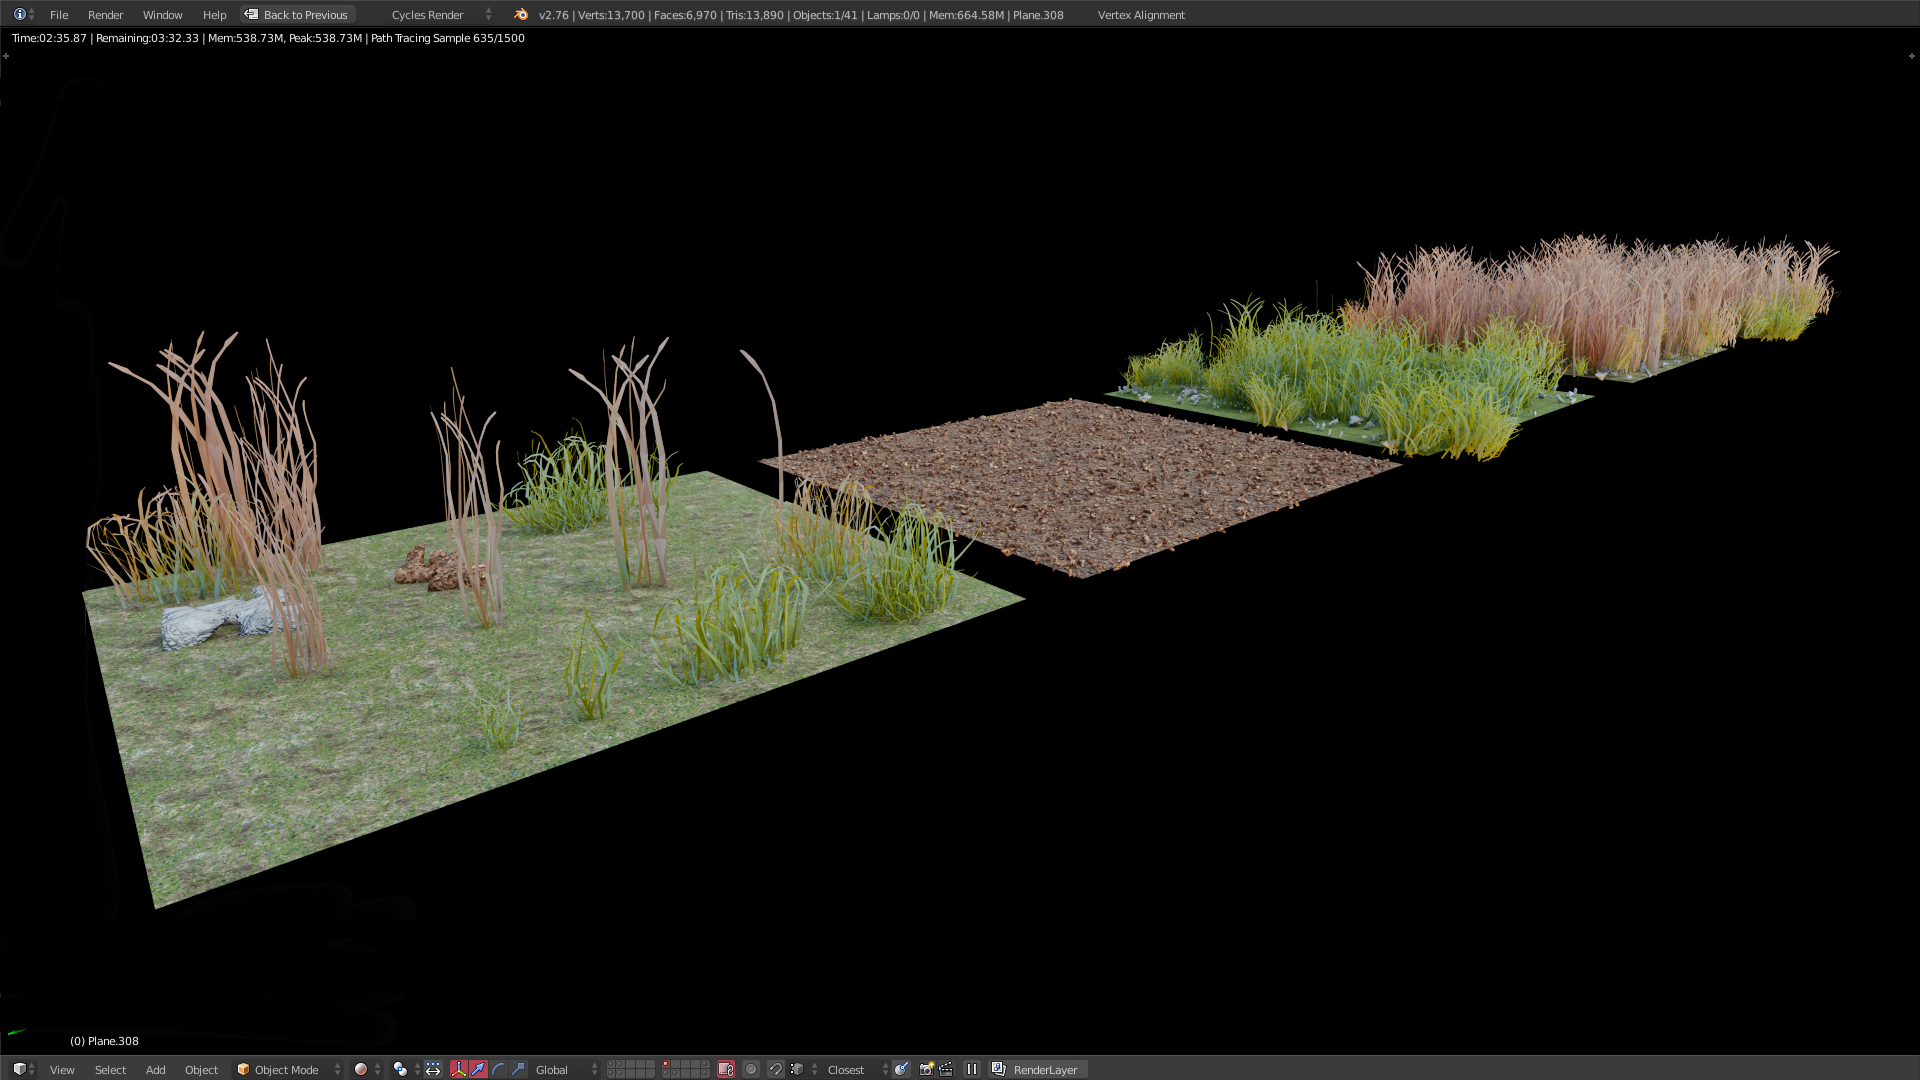 I modeled six variations of stones and some more grass